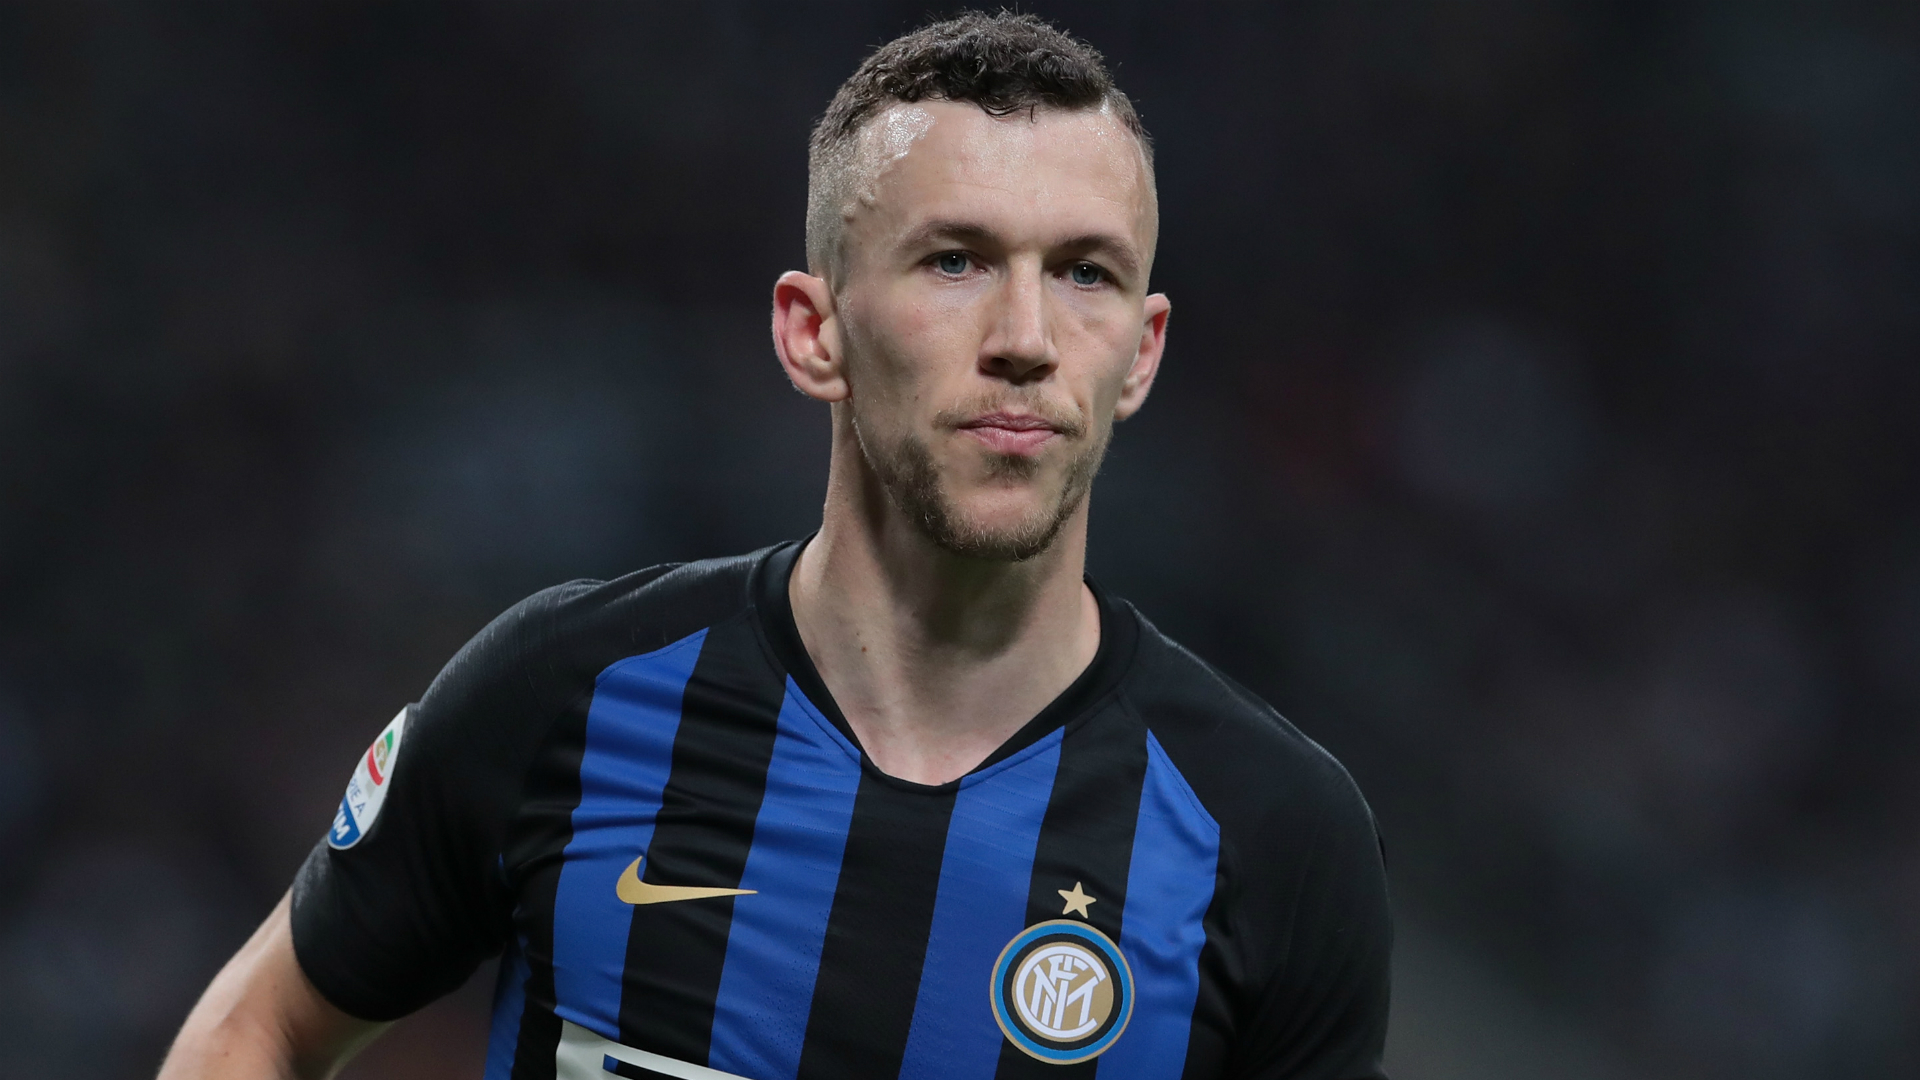 Perisic set to sign for Bayern Munich